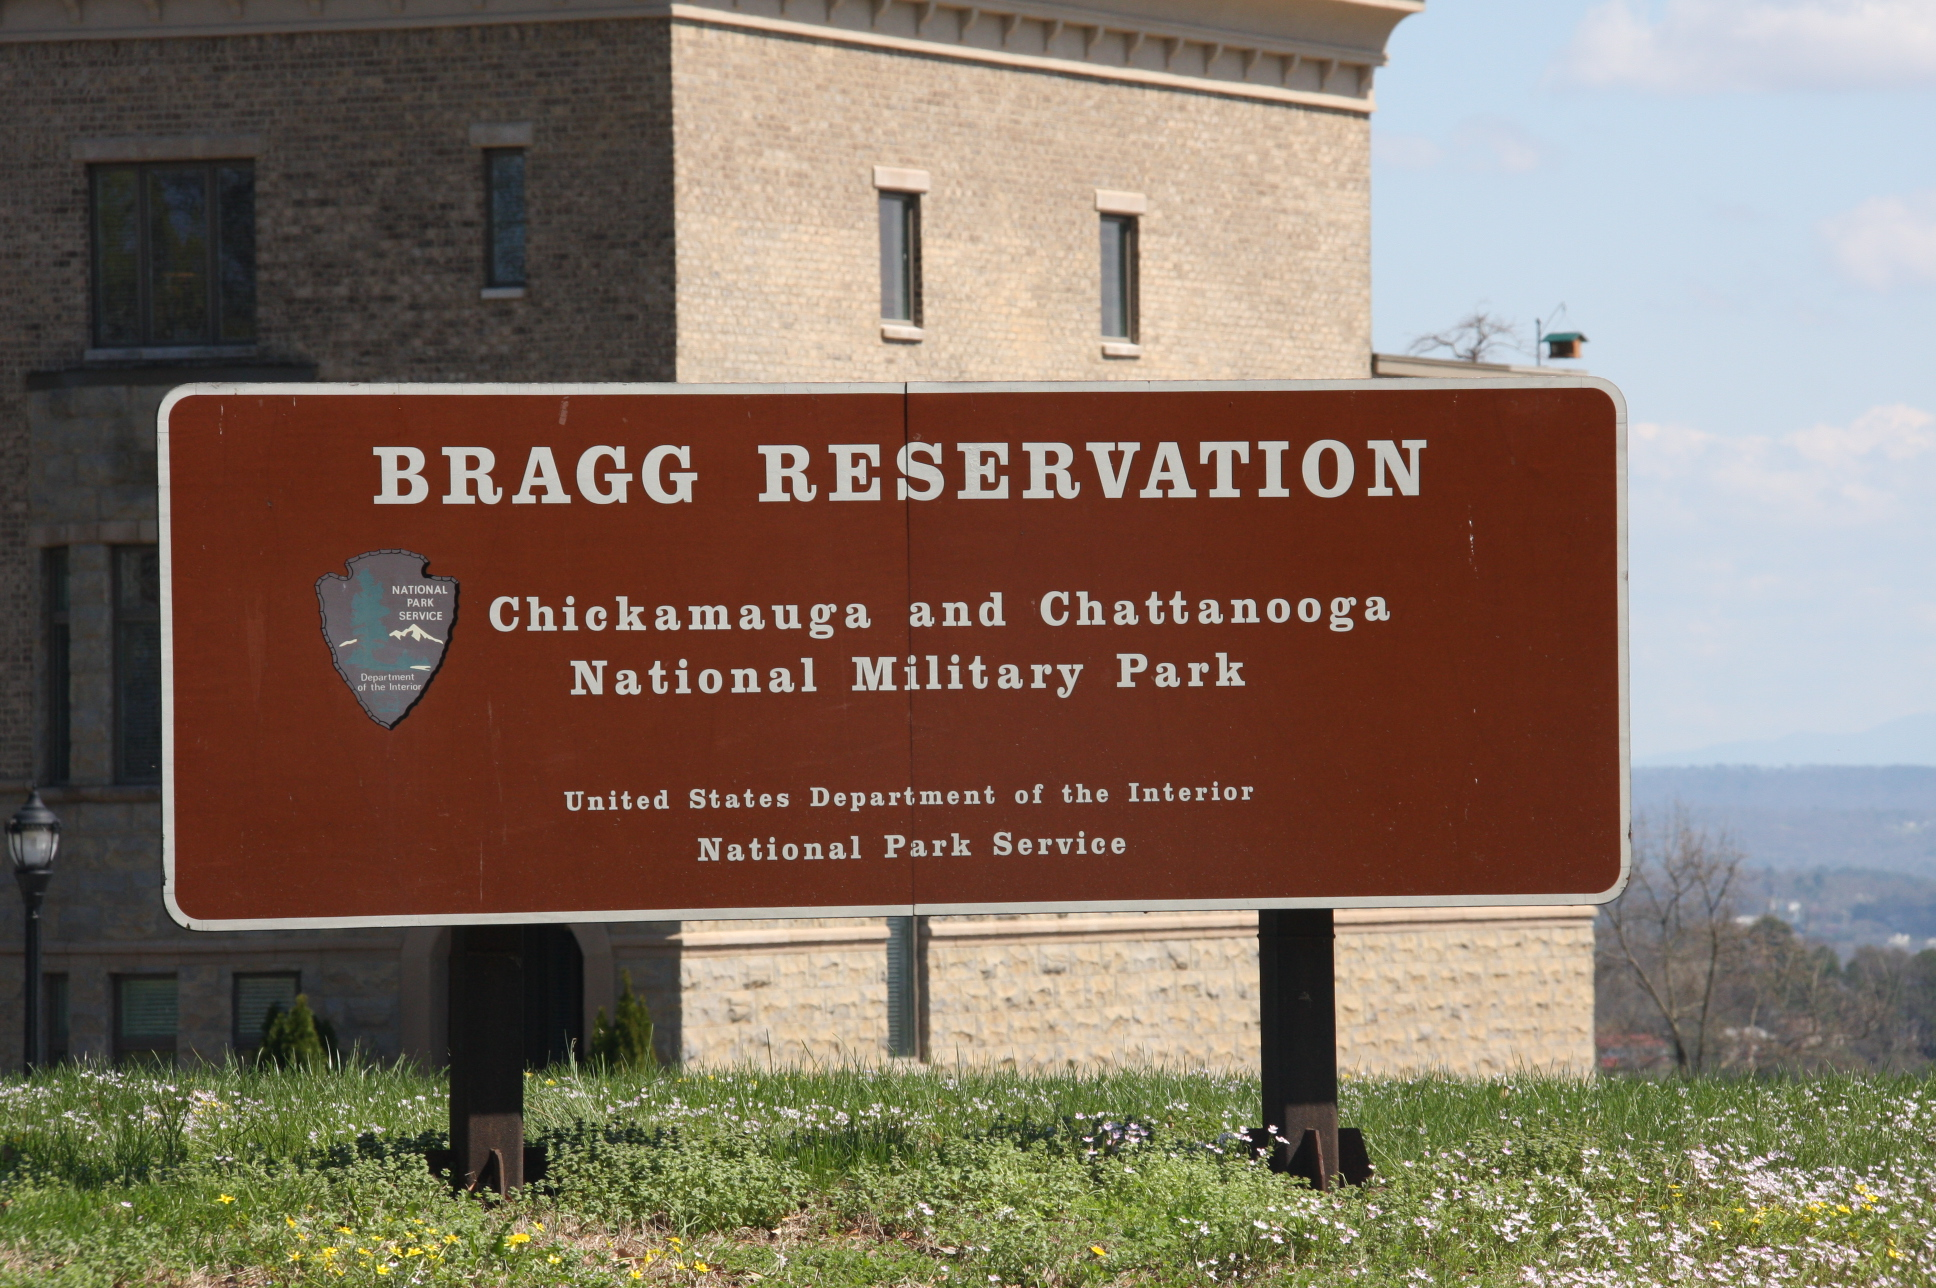 Bragg's Reservation entrance sign, click photo to enlarge.